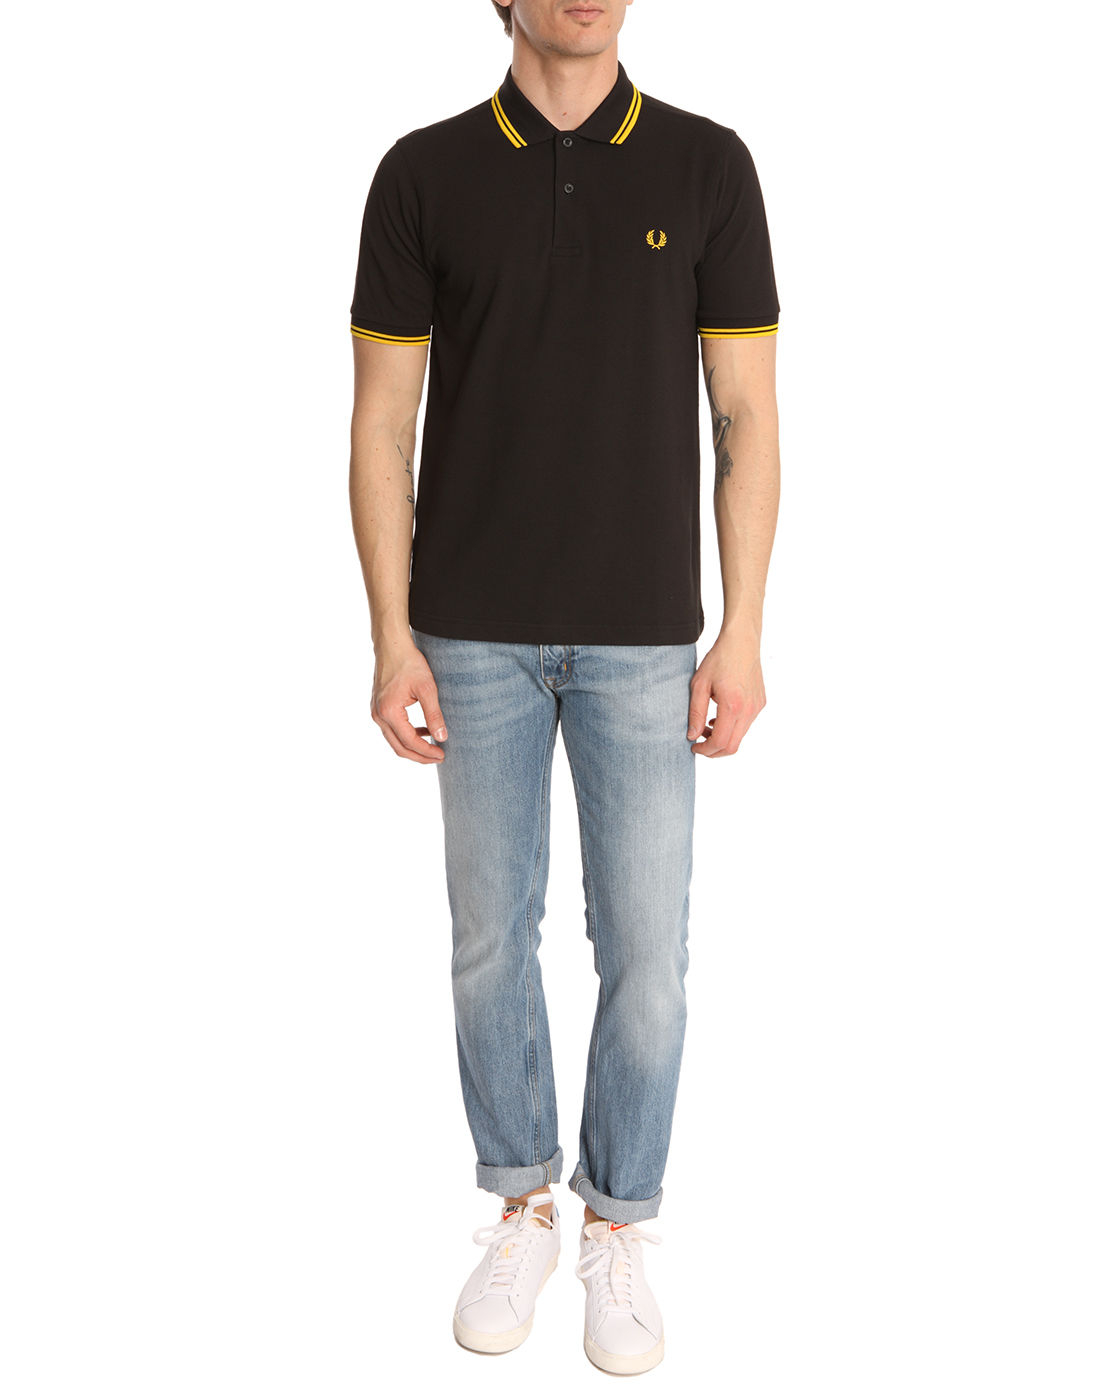 Fred Perry Slim Fit Black Polo Shirt With Yellow Band In